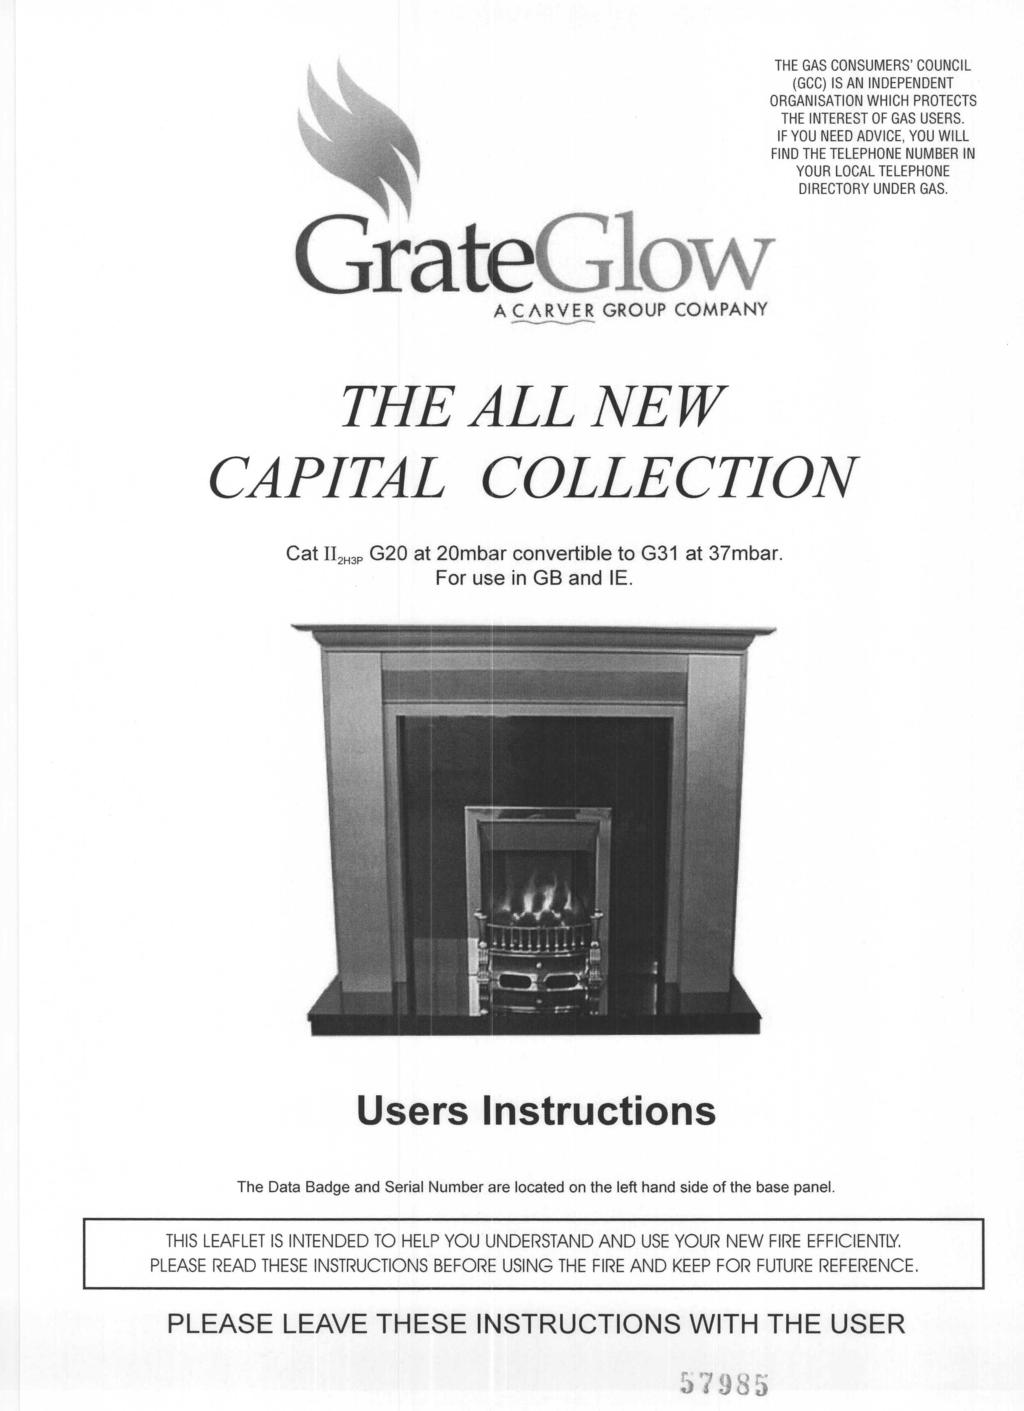 GrateGlow A CARVER GROUP COMPANY --..--... THE GAS CONSUMERS' COUNCIL (GCC) IS AN INDEPENDENT ORGANISATION WHICH PROTECTS THE INTEREST OF GAS USERS.